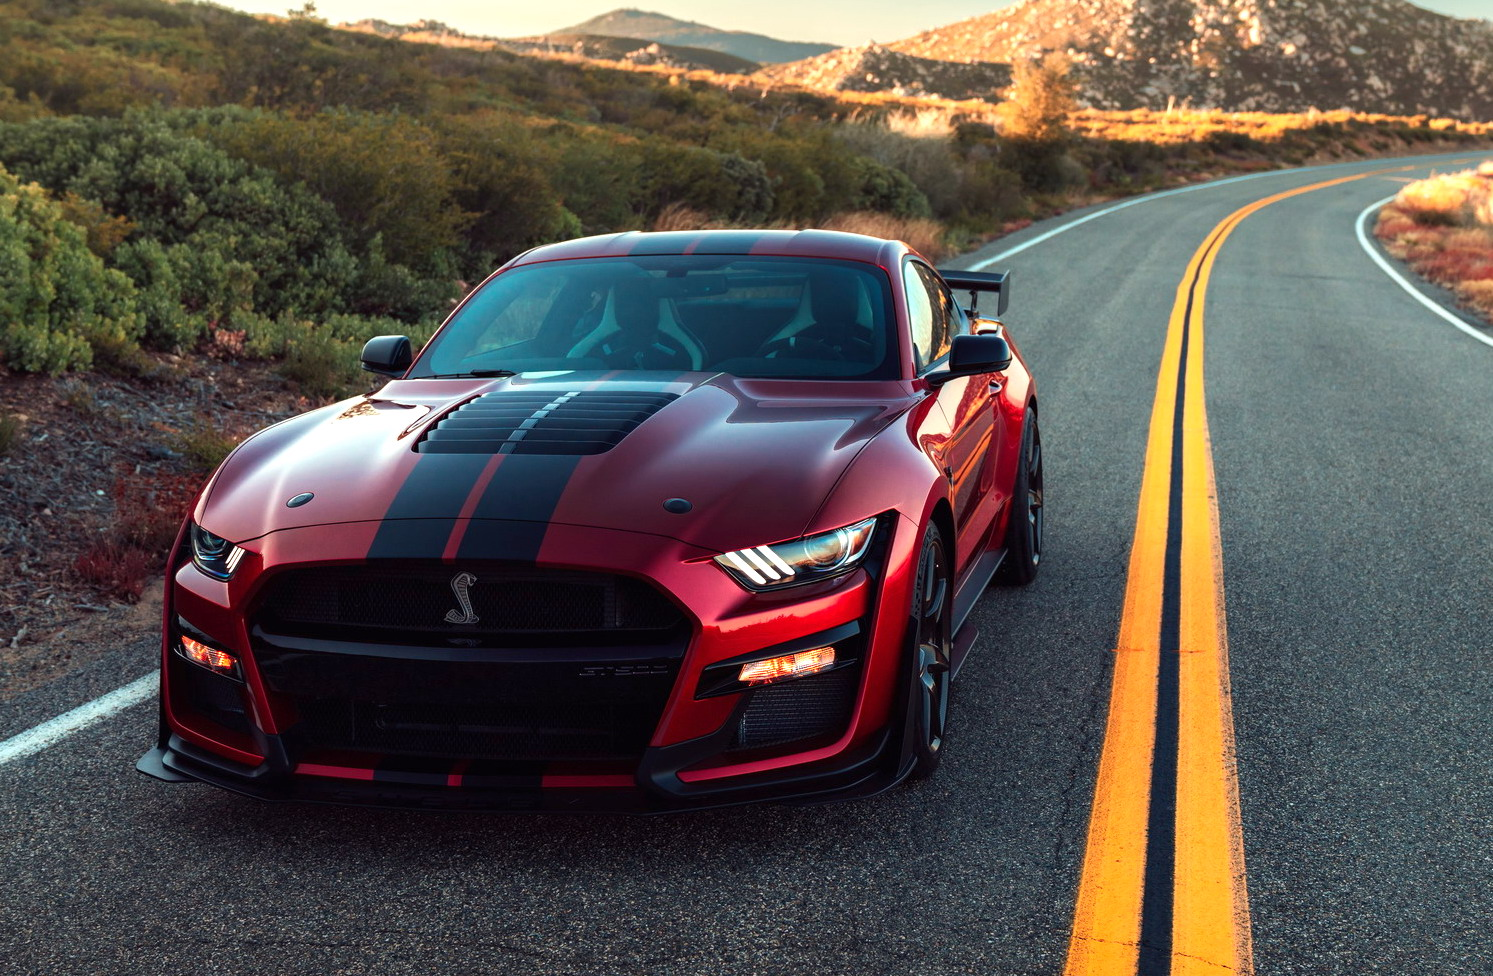 2020-Ford-Mustang-Shelby-GT500-02.jpg